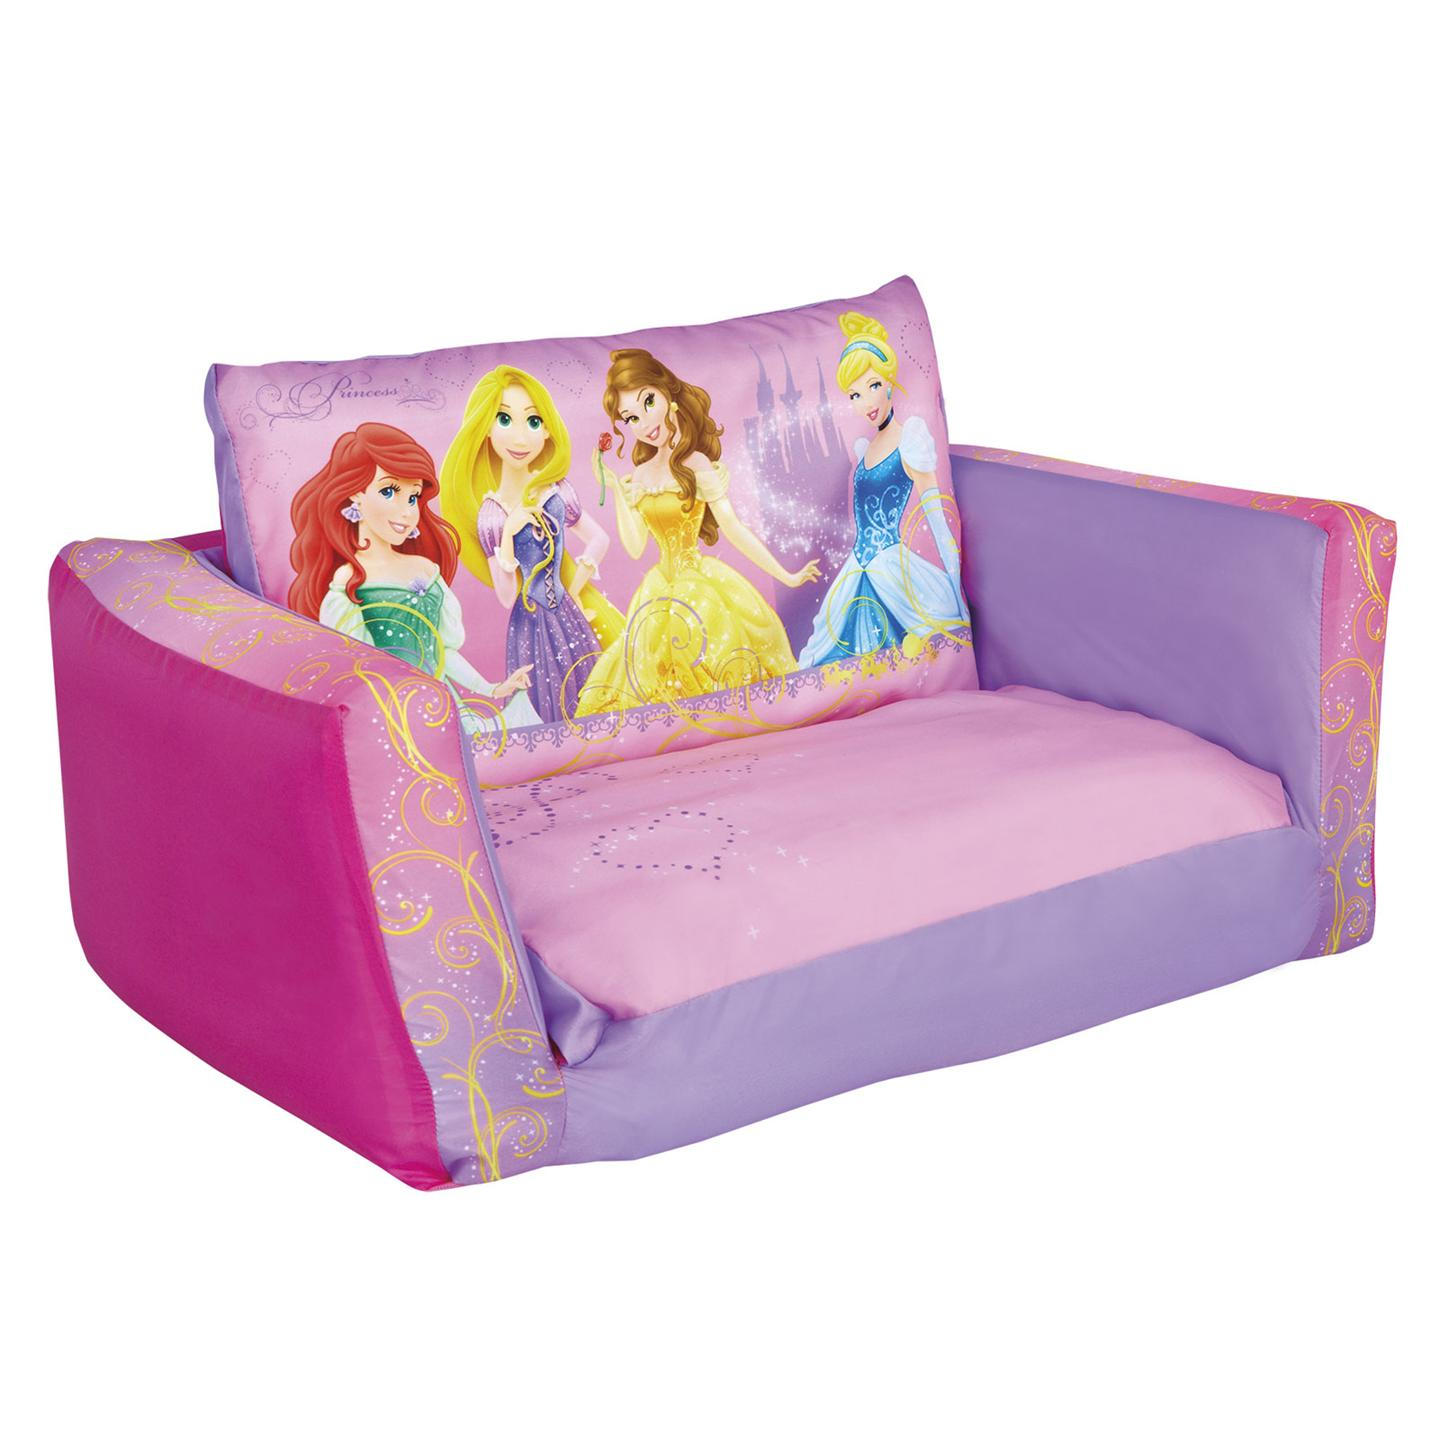 disney princess flip out sofa 6 piece sectional uk and bed ready room new ebay